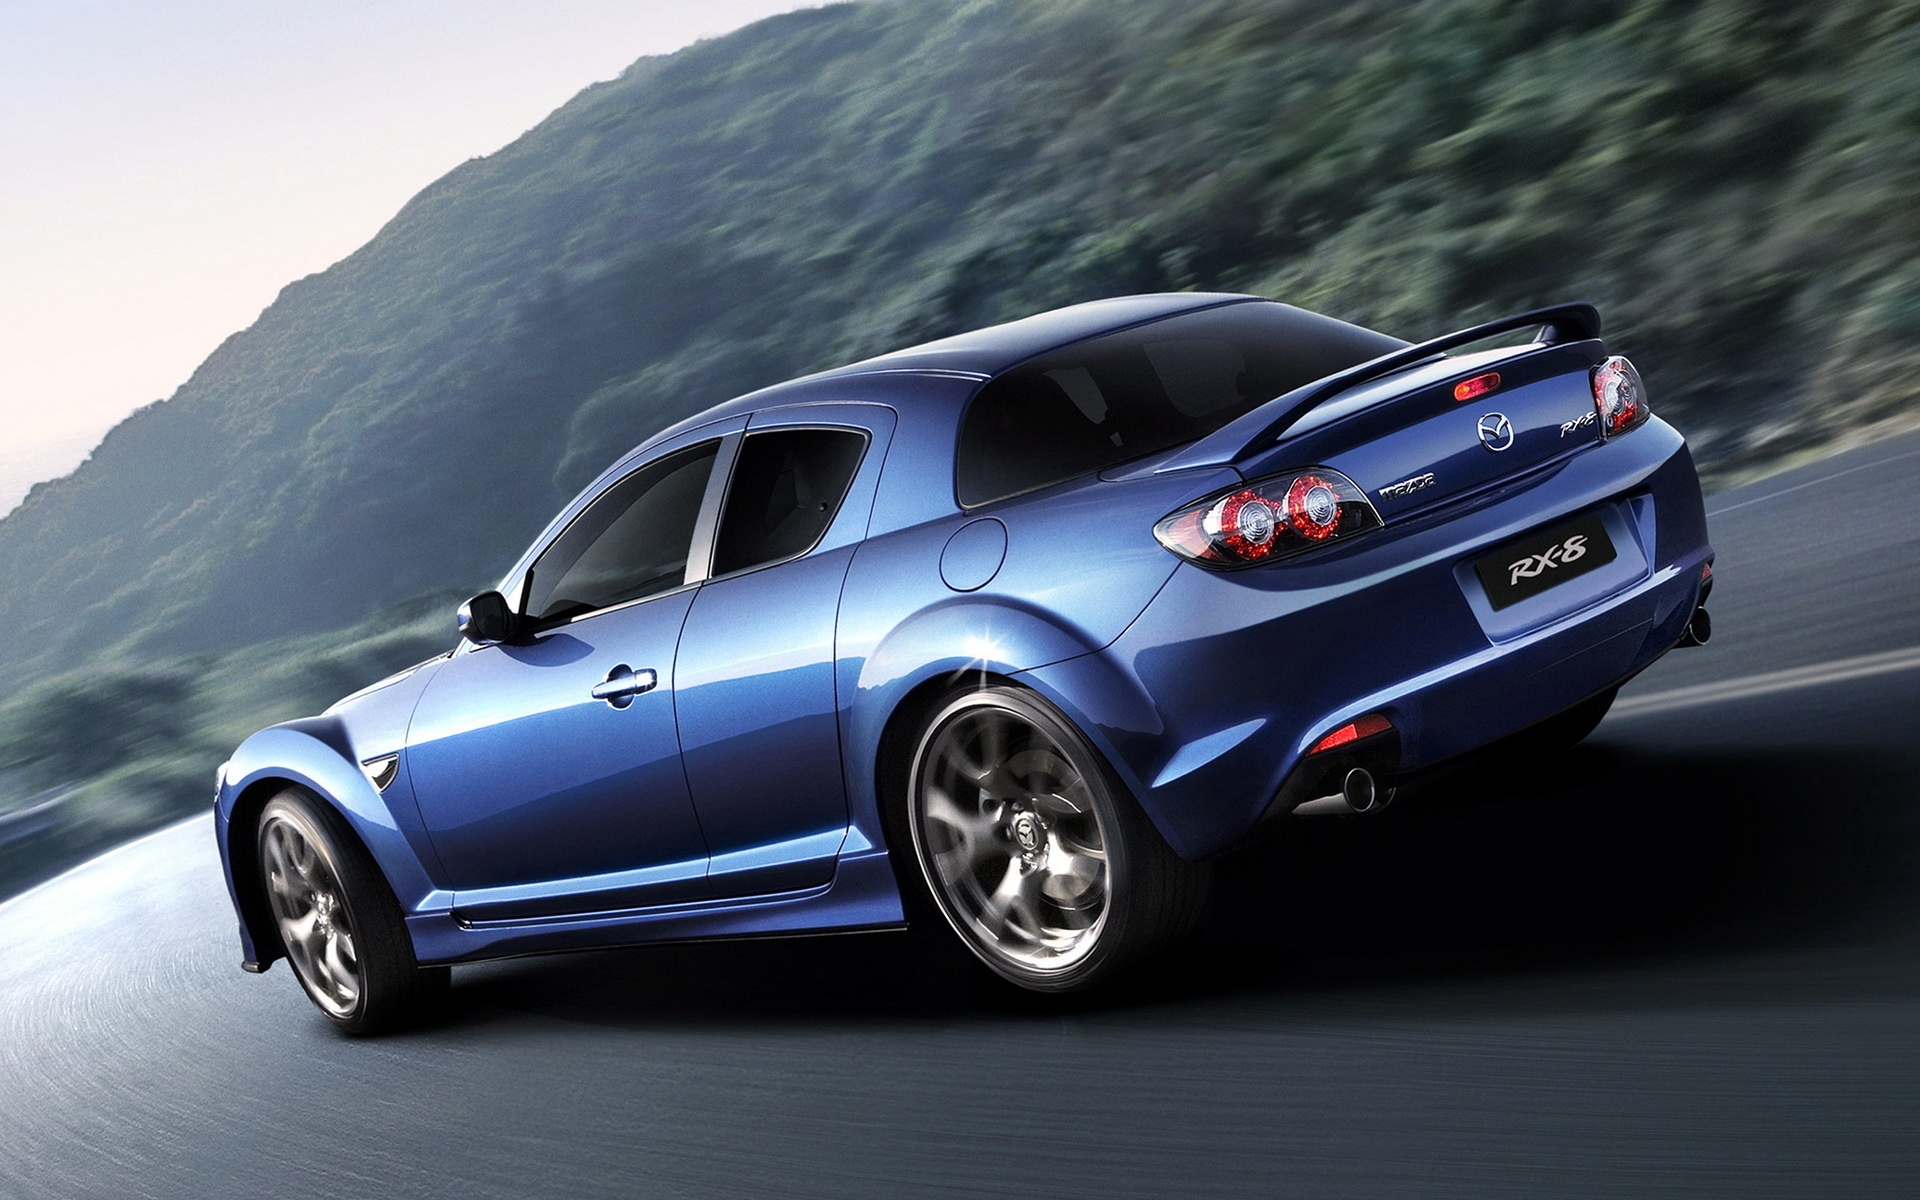 Free Mazda rx8 Wallpaper